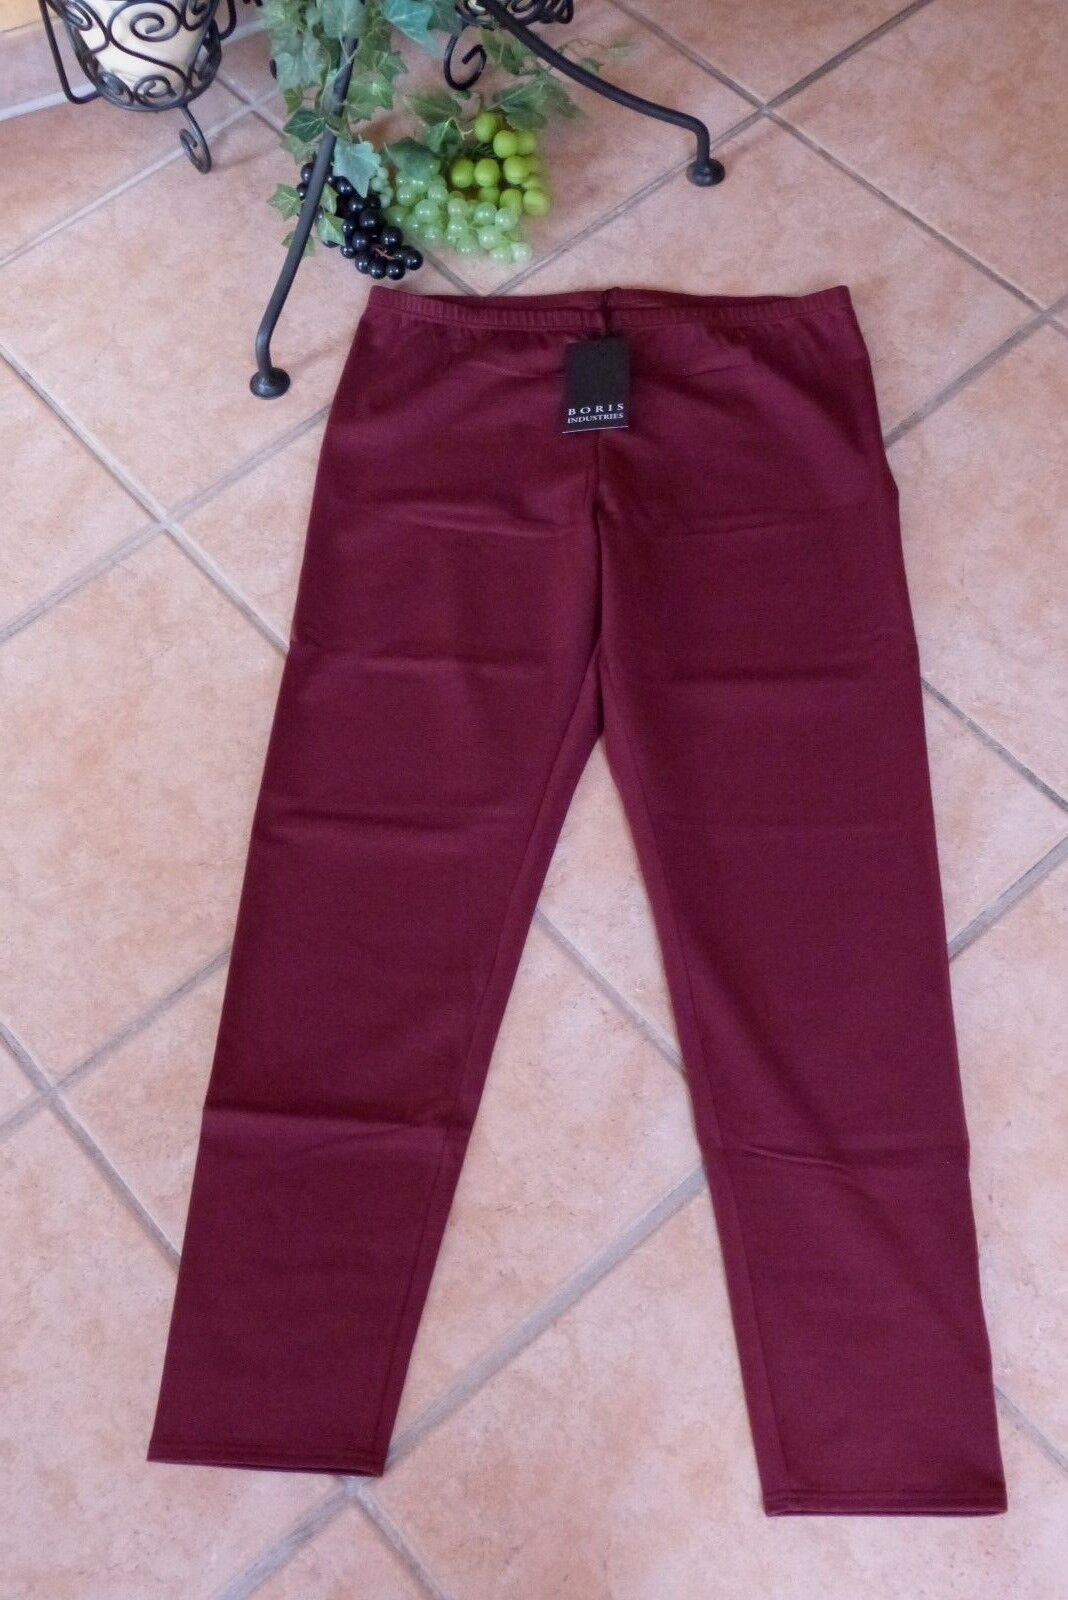 BORIS INDUSTRIES Leggings Winter 40 42 (2) NEU  bordeaux Double Face LAGENLOOK